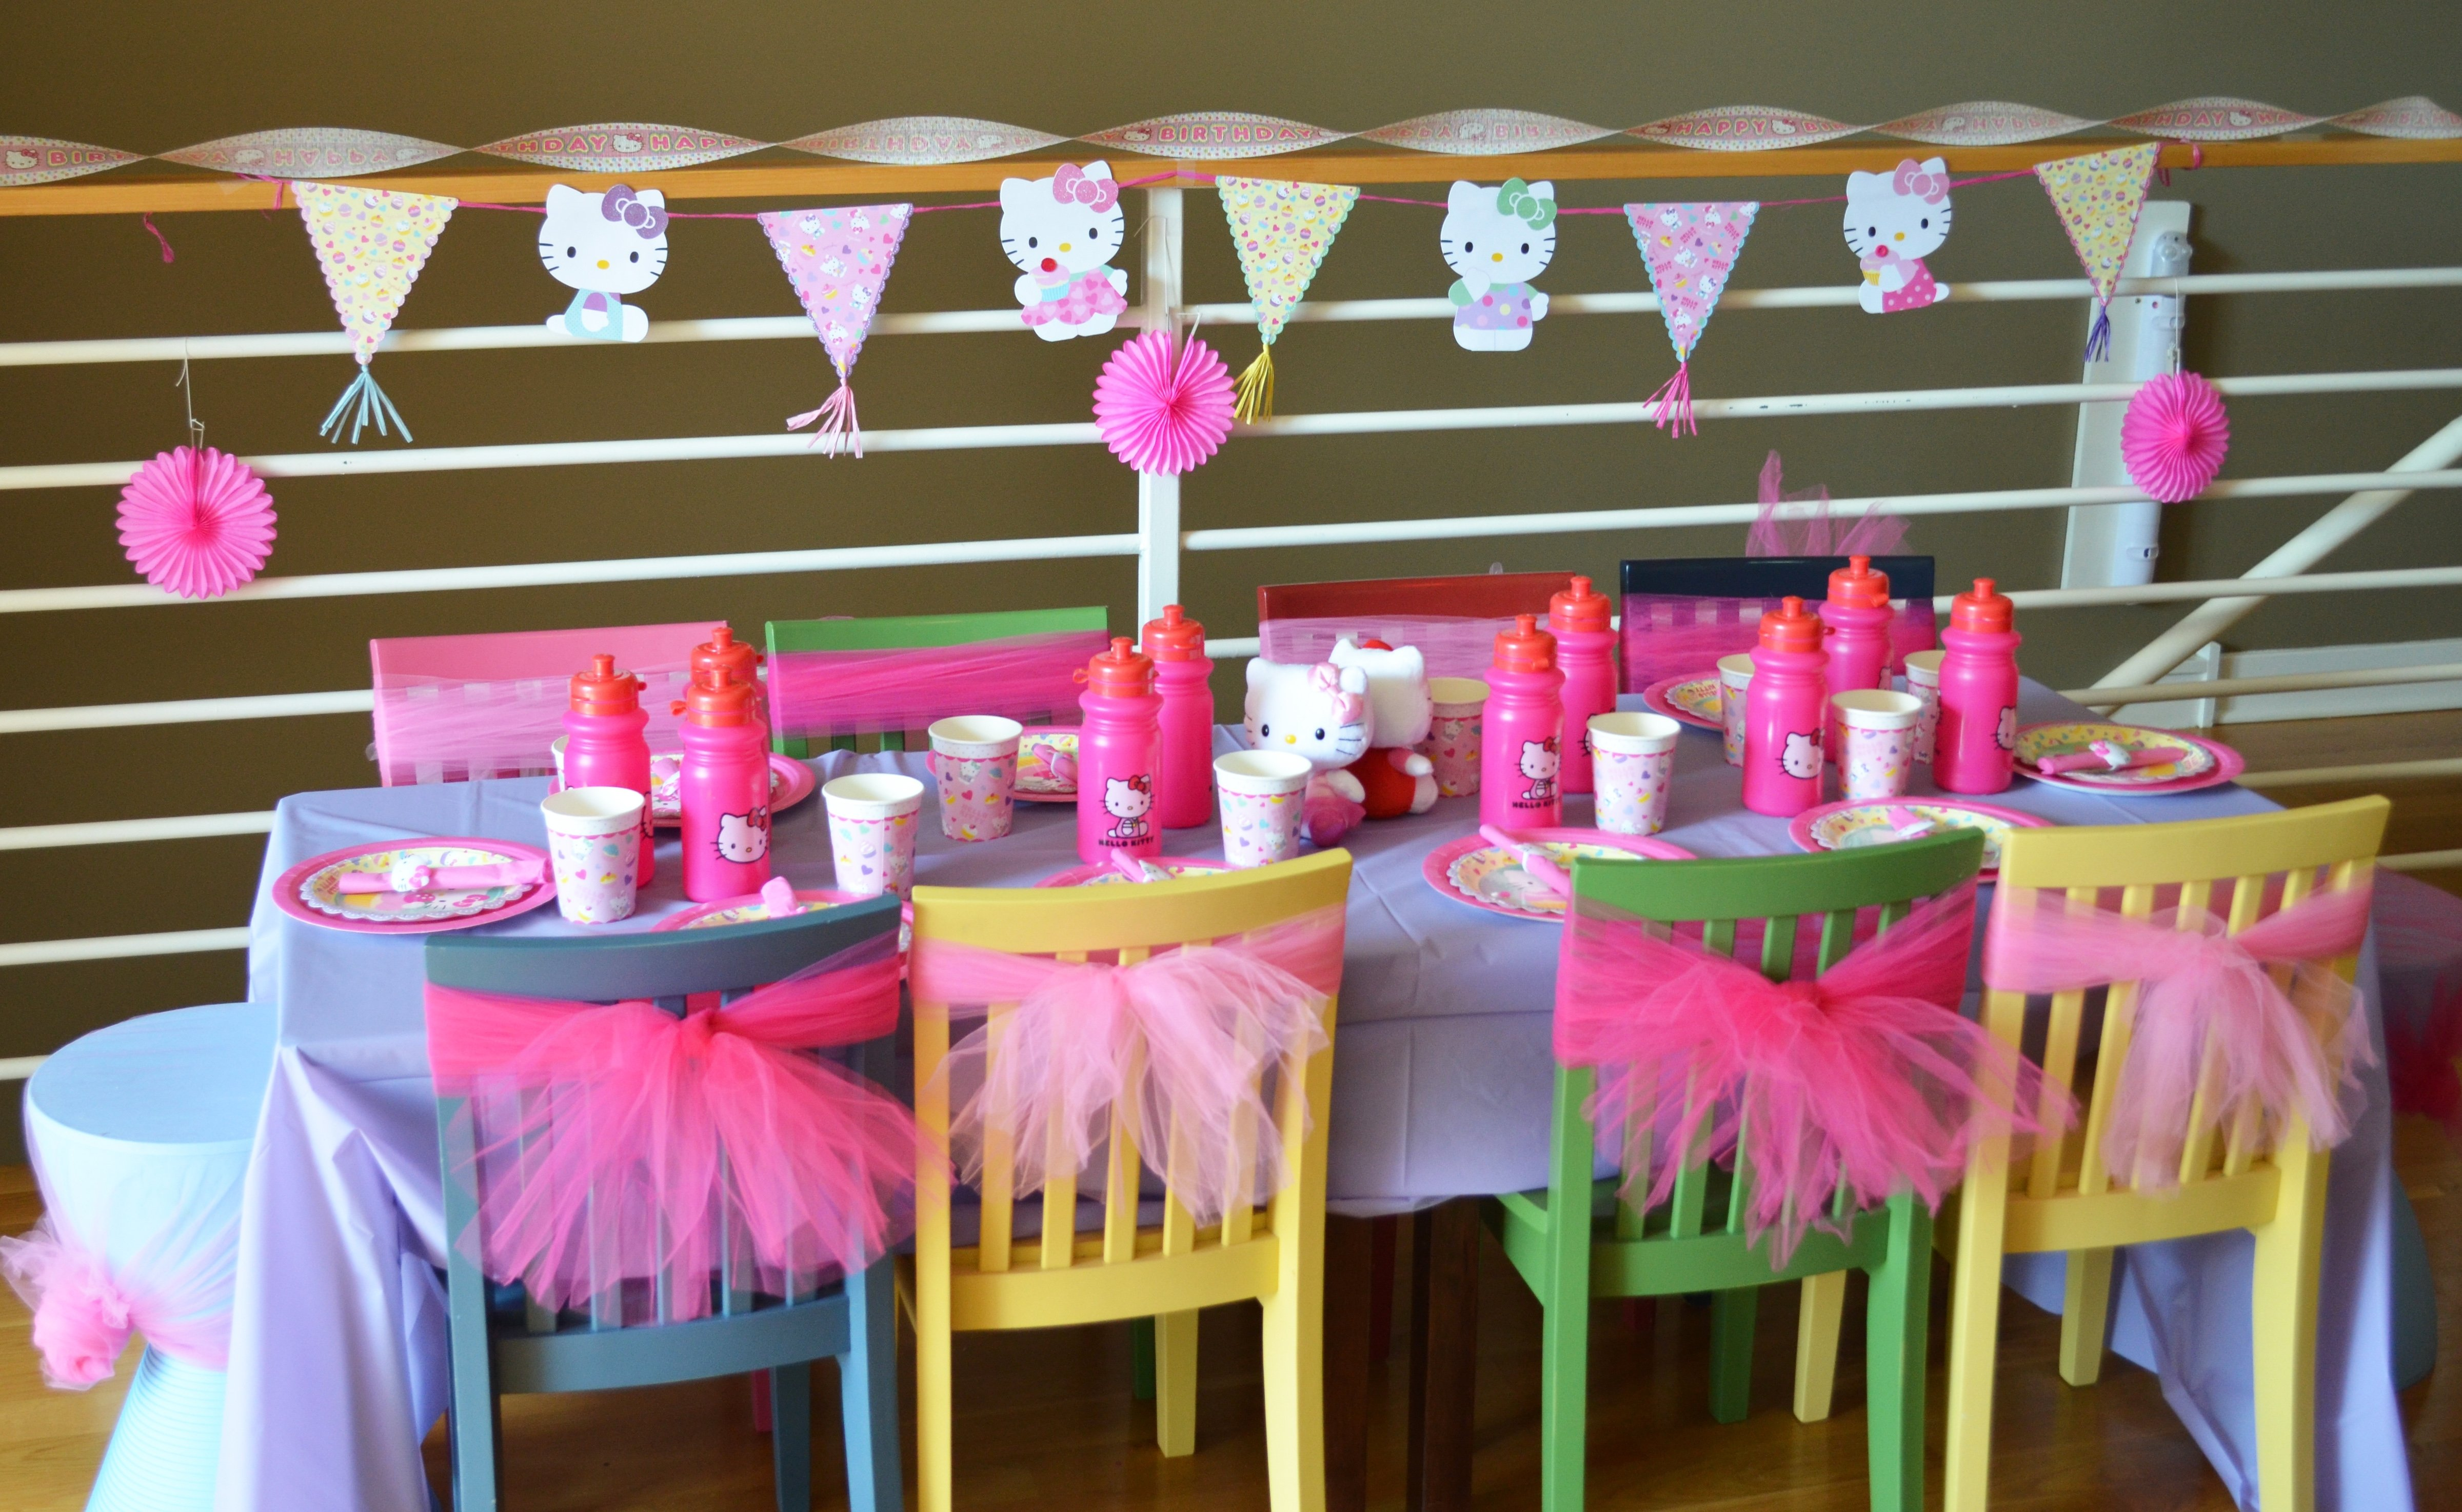 10 Most Recommended 5 Year Birthday Party Ideas a how to hello kitty birthday party hello kitty birthday kitty 3 2020